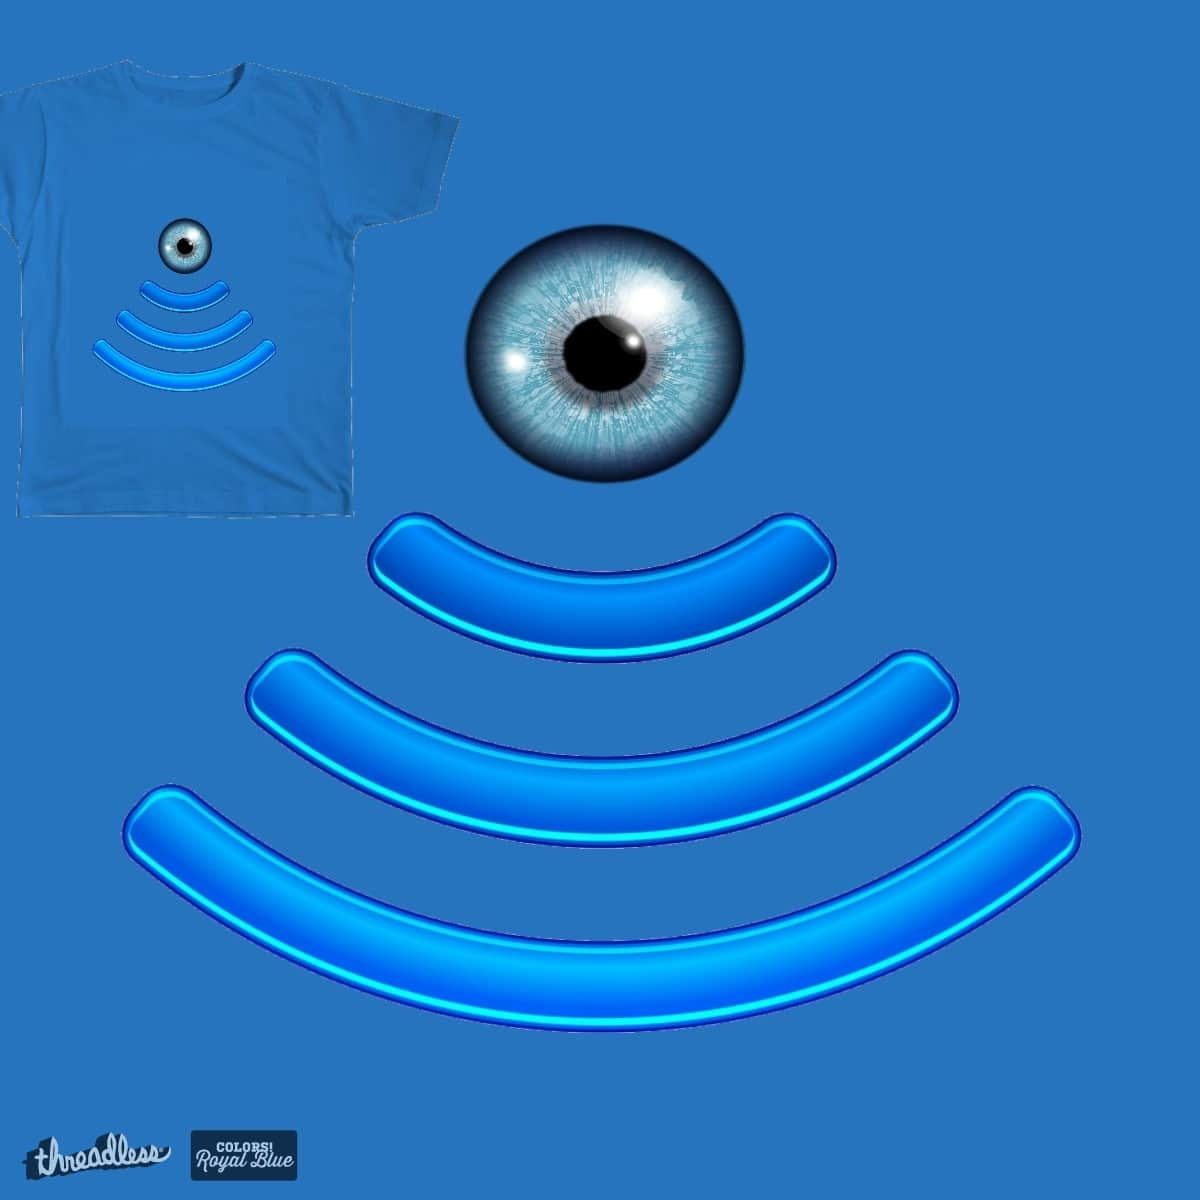 BLUE EYE by metal_kid on Threadless